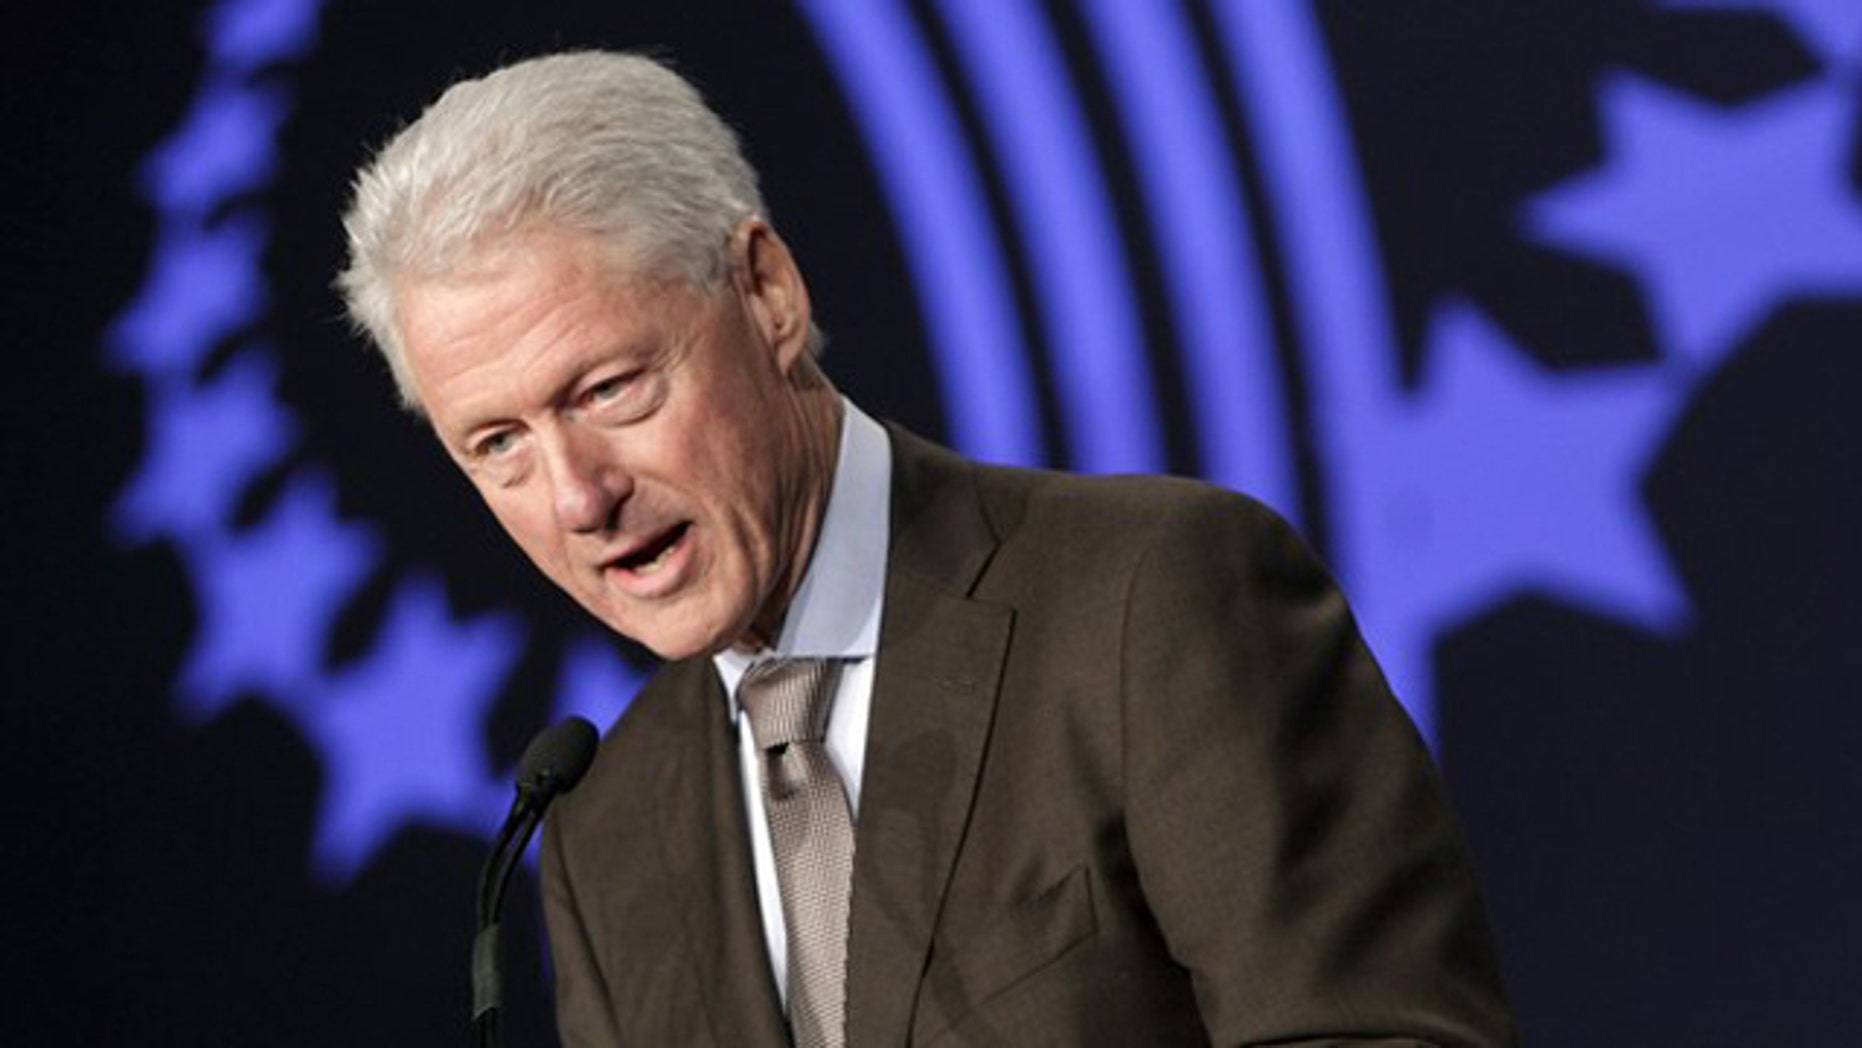 Former President Bill Clinton speaks at the Clinton Global Initiative in Chicago June 30.